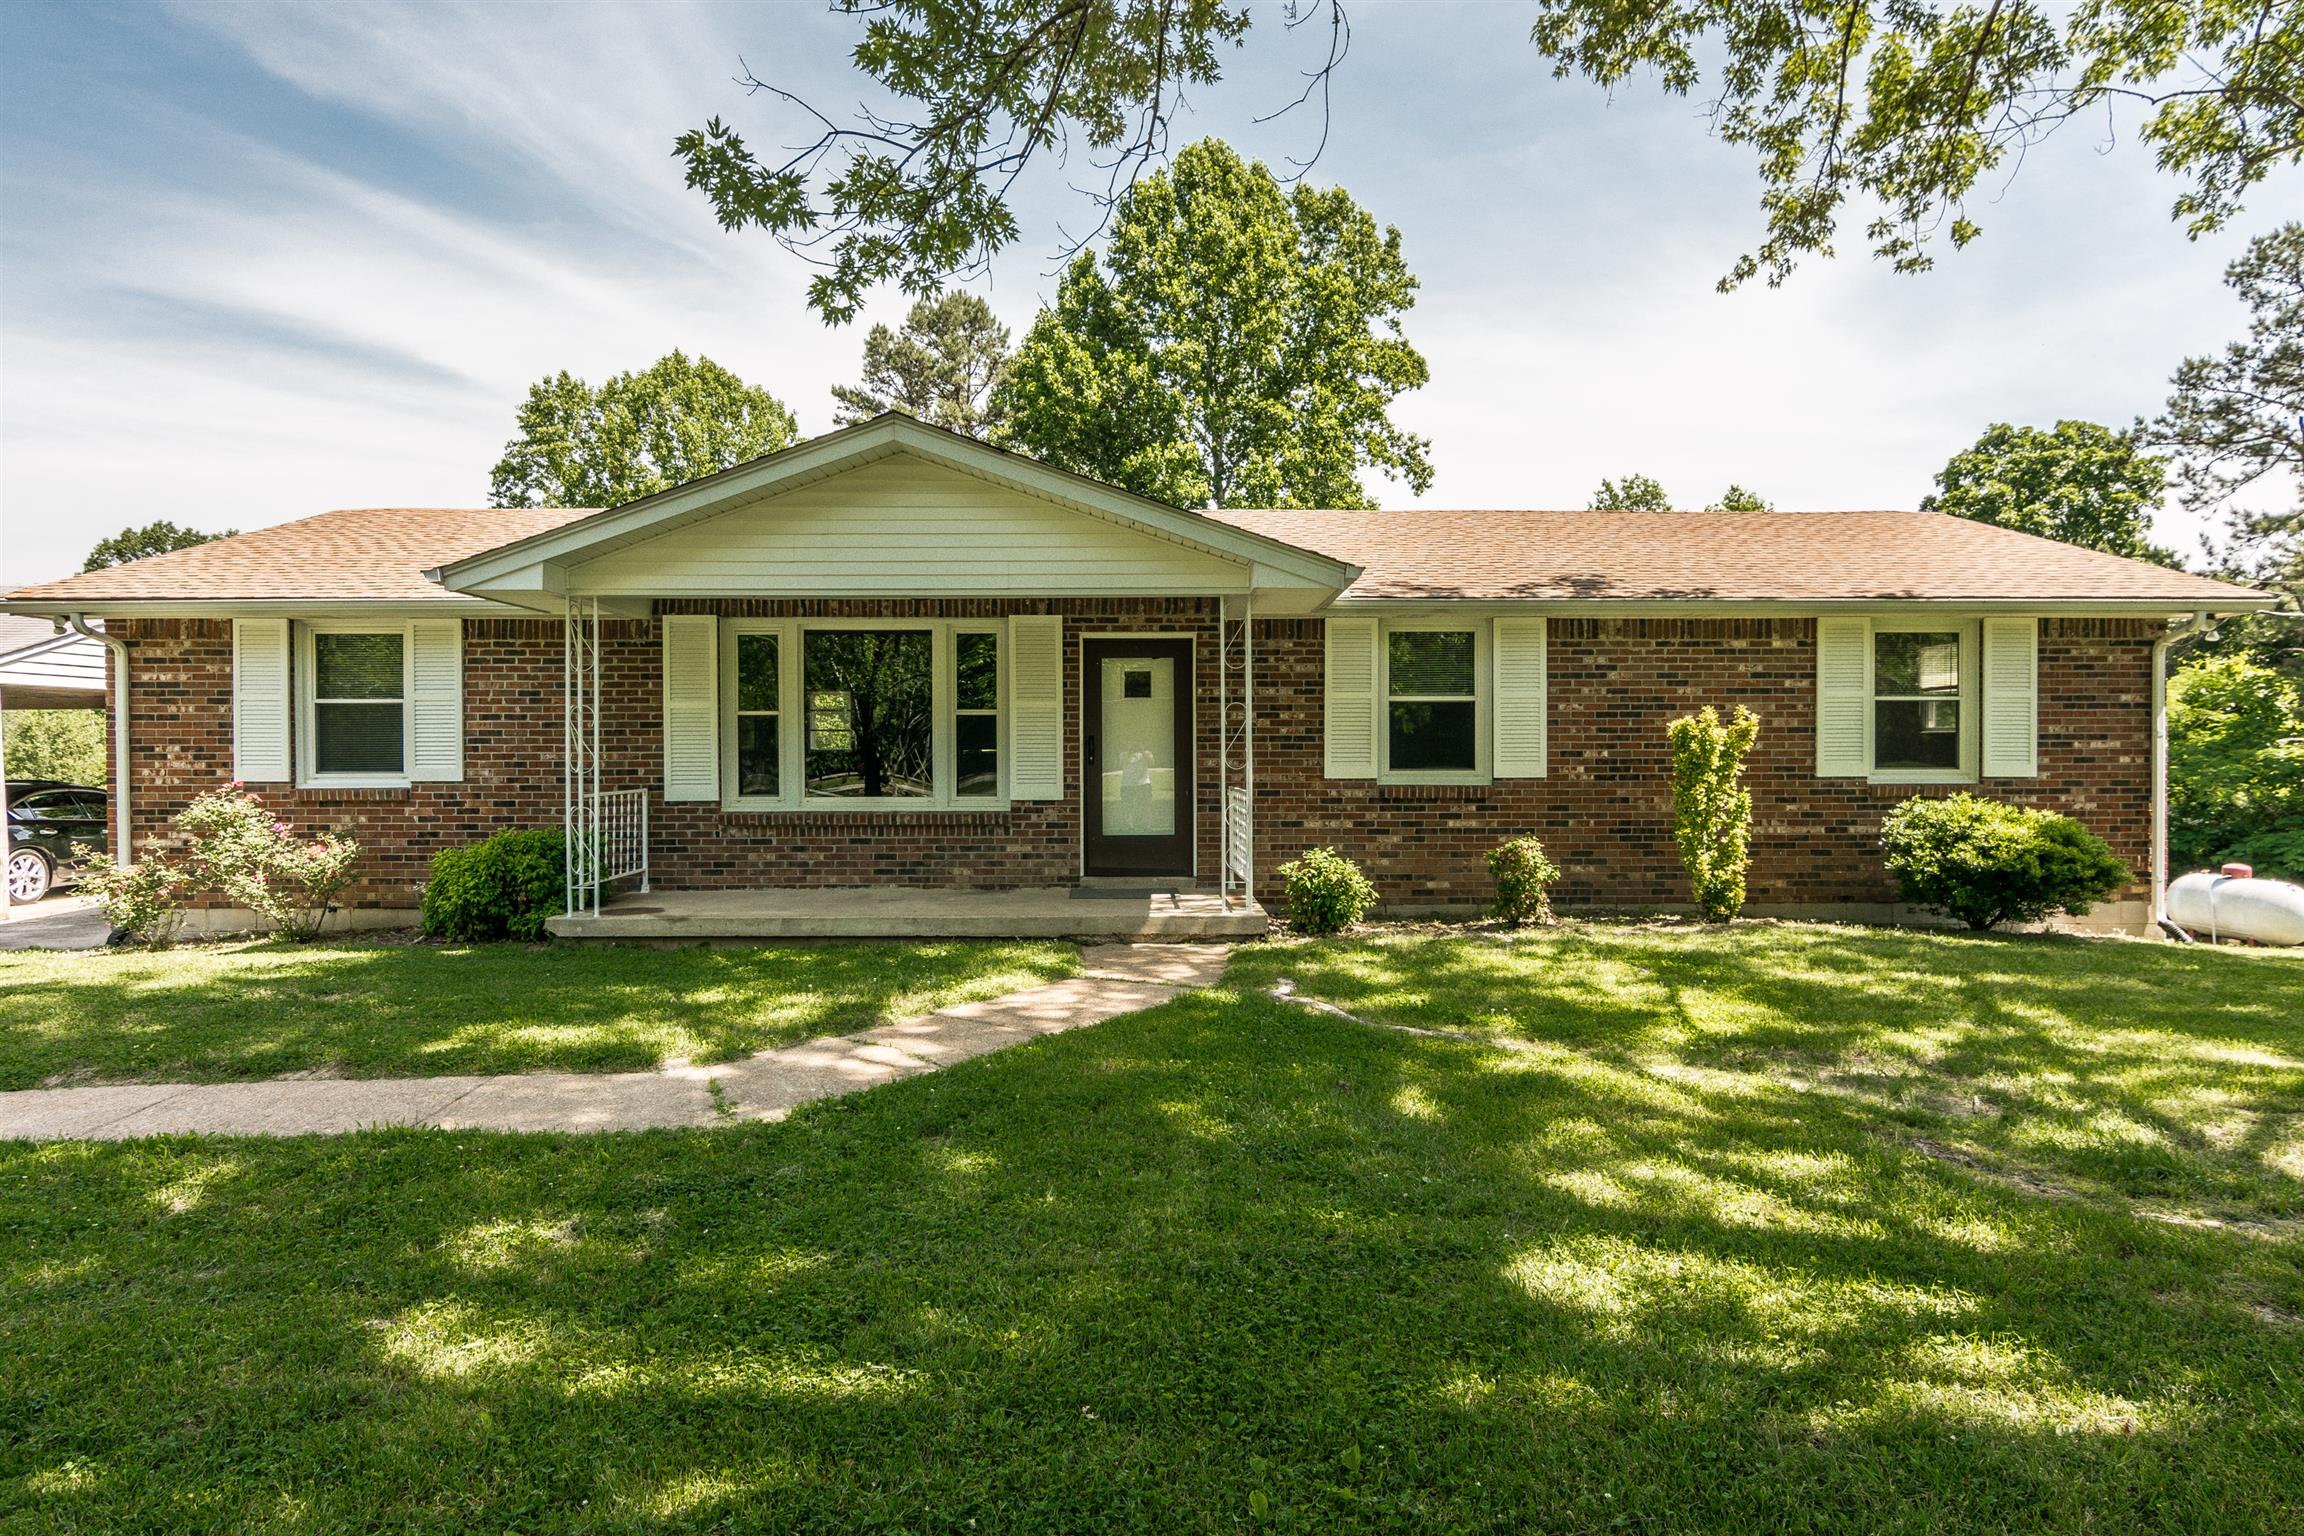 5124 Ridge Hill Dr, Joelton, TN 37080 - Joelton, TN real estate listing